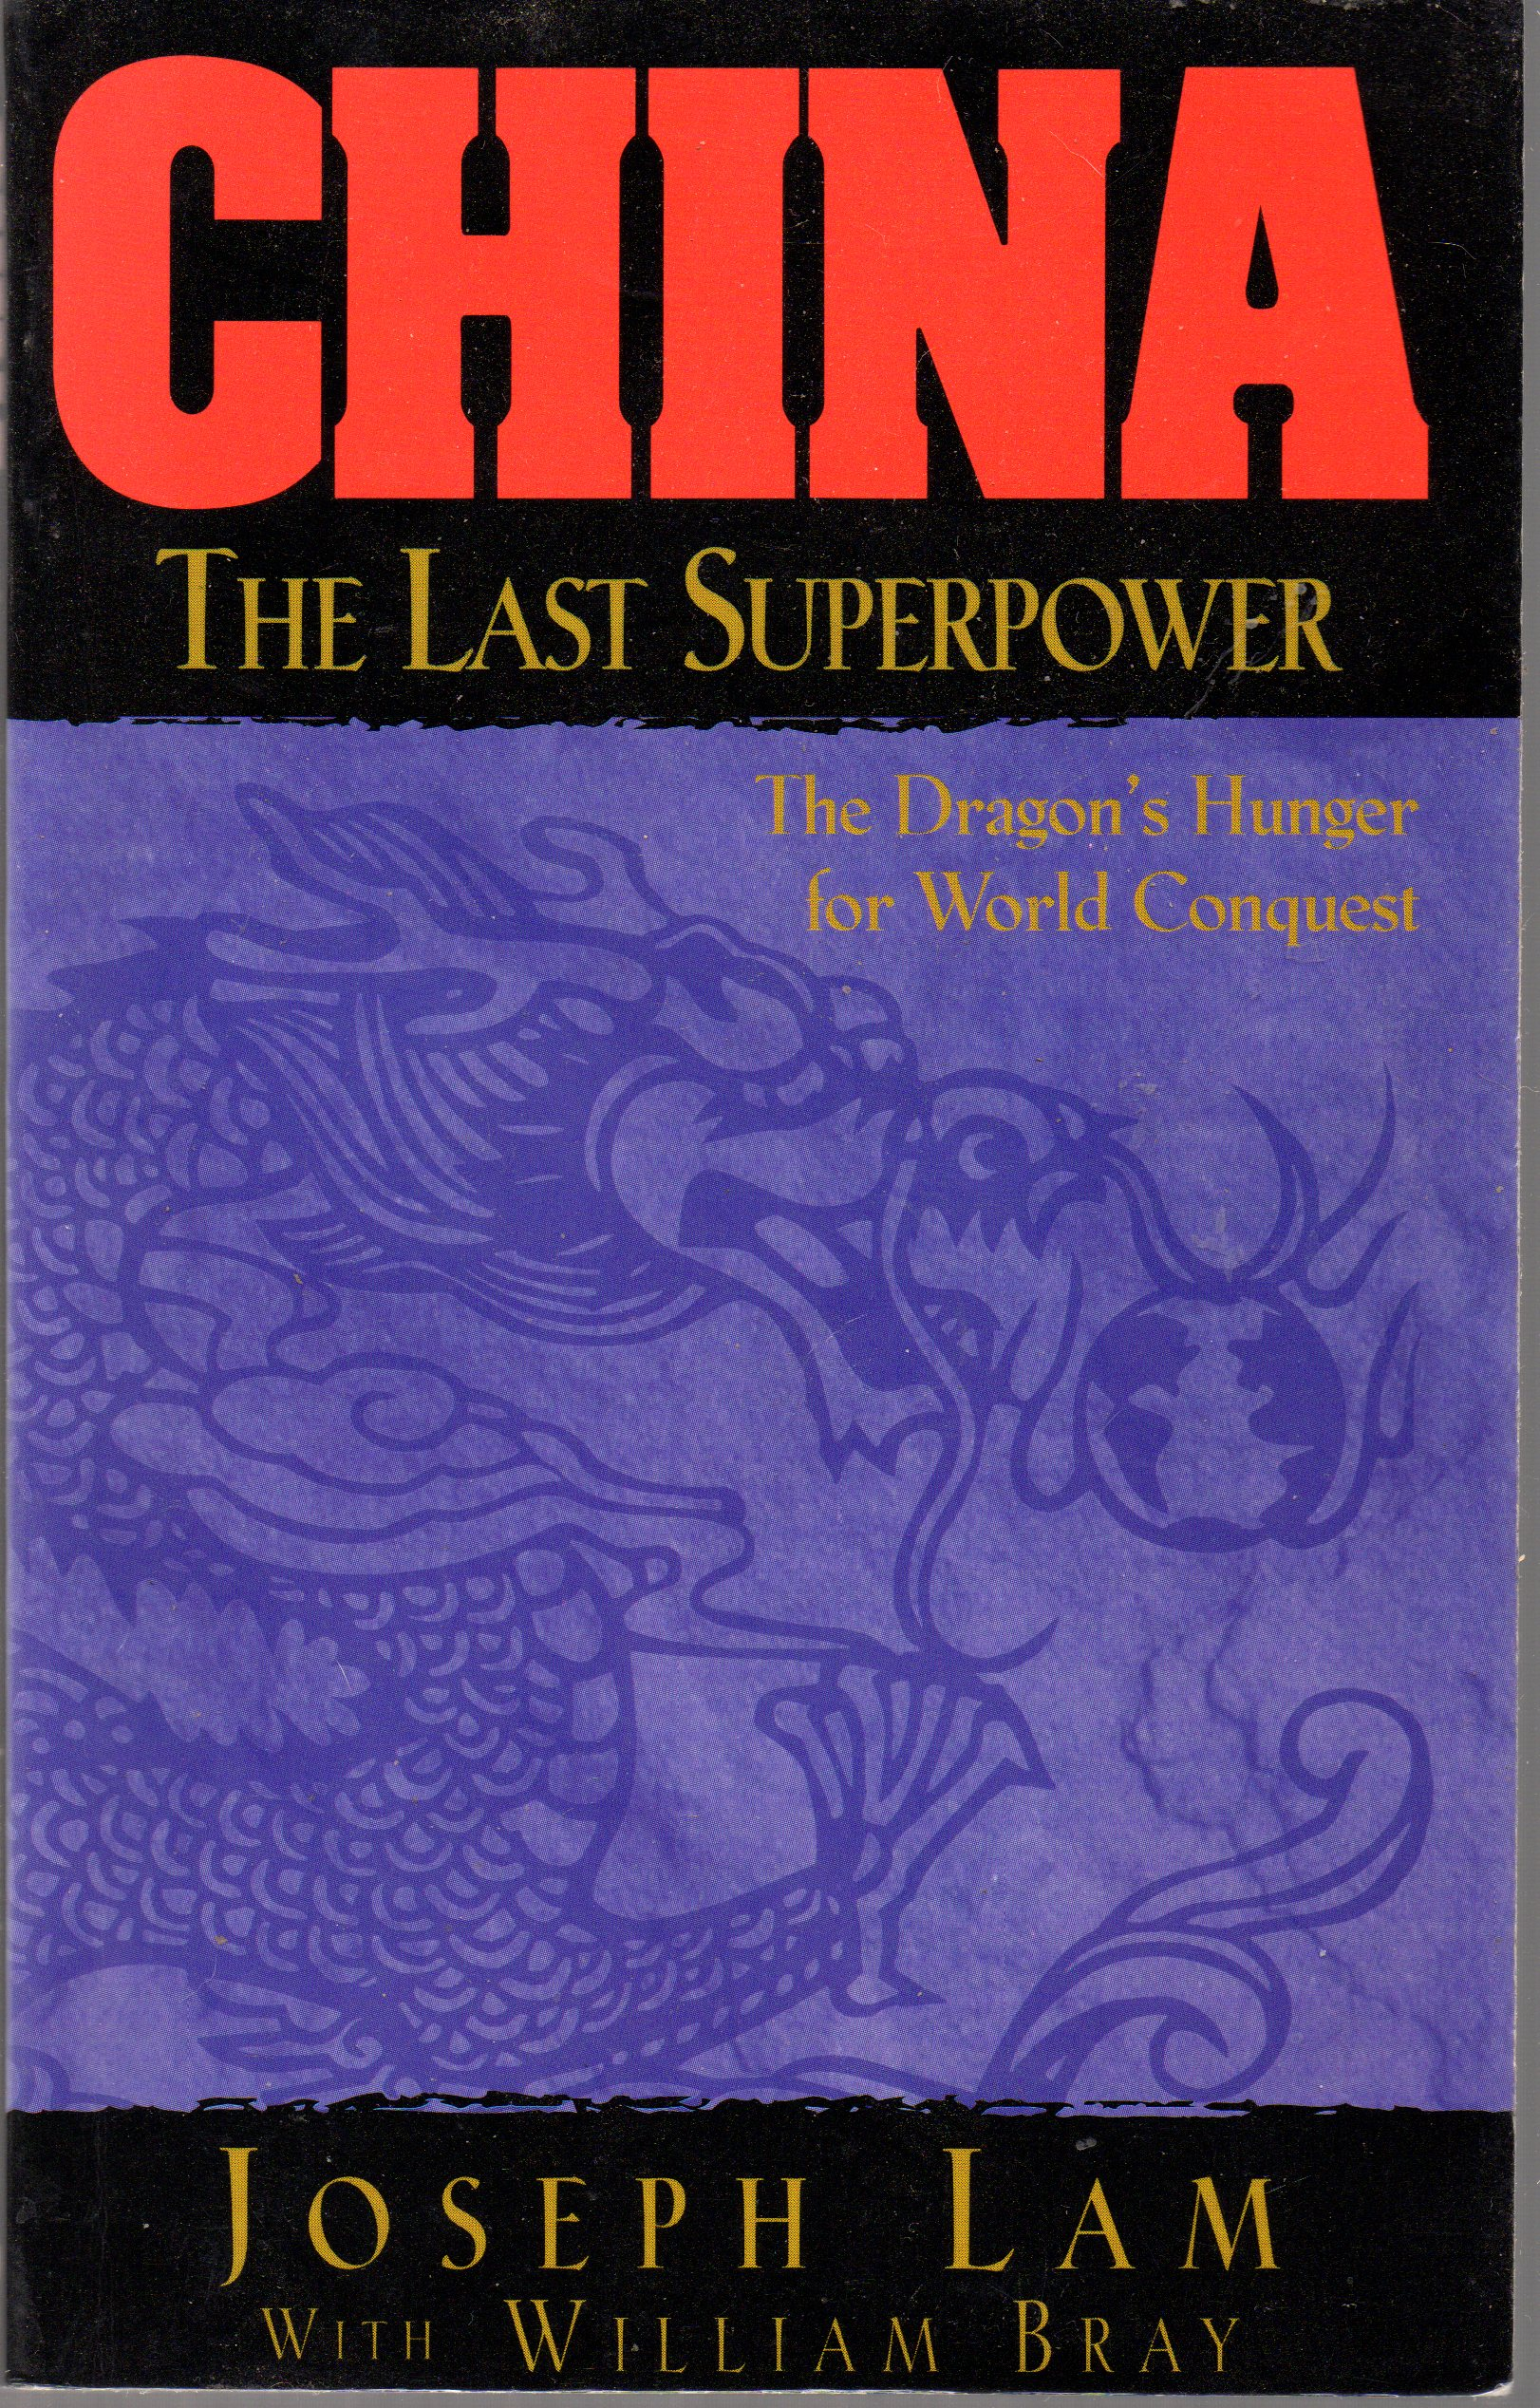 Image for China: The Last Superpower